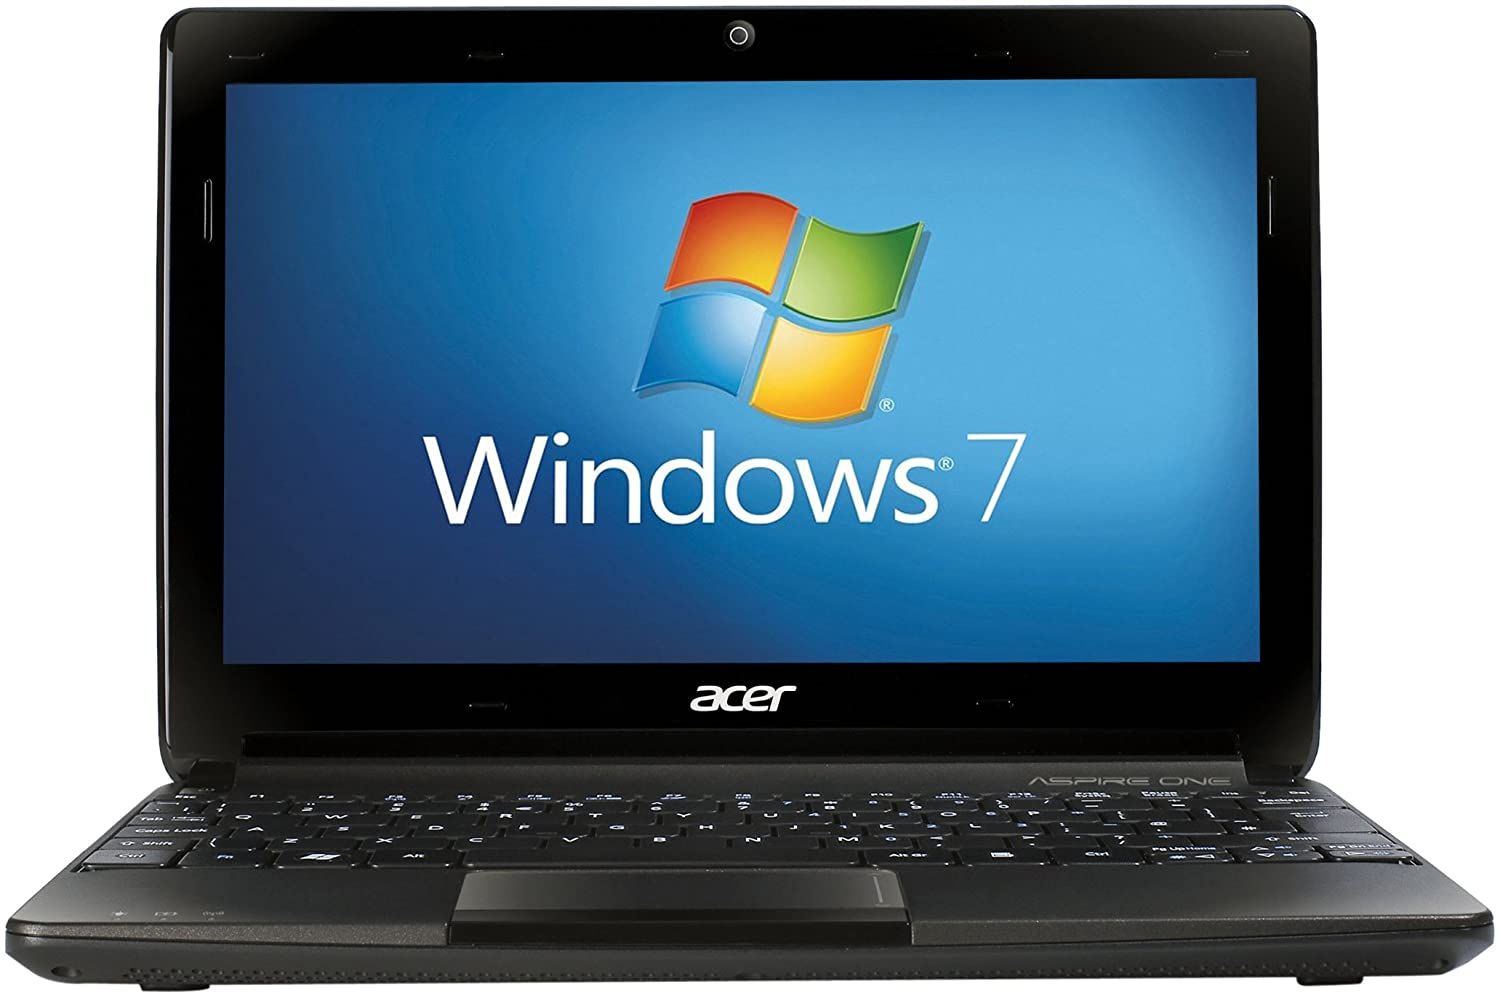 ACER ASPIRE ONE D270 WIRELESS LAN DRIVERS DOWNLOAD (2019)